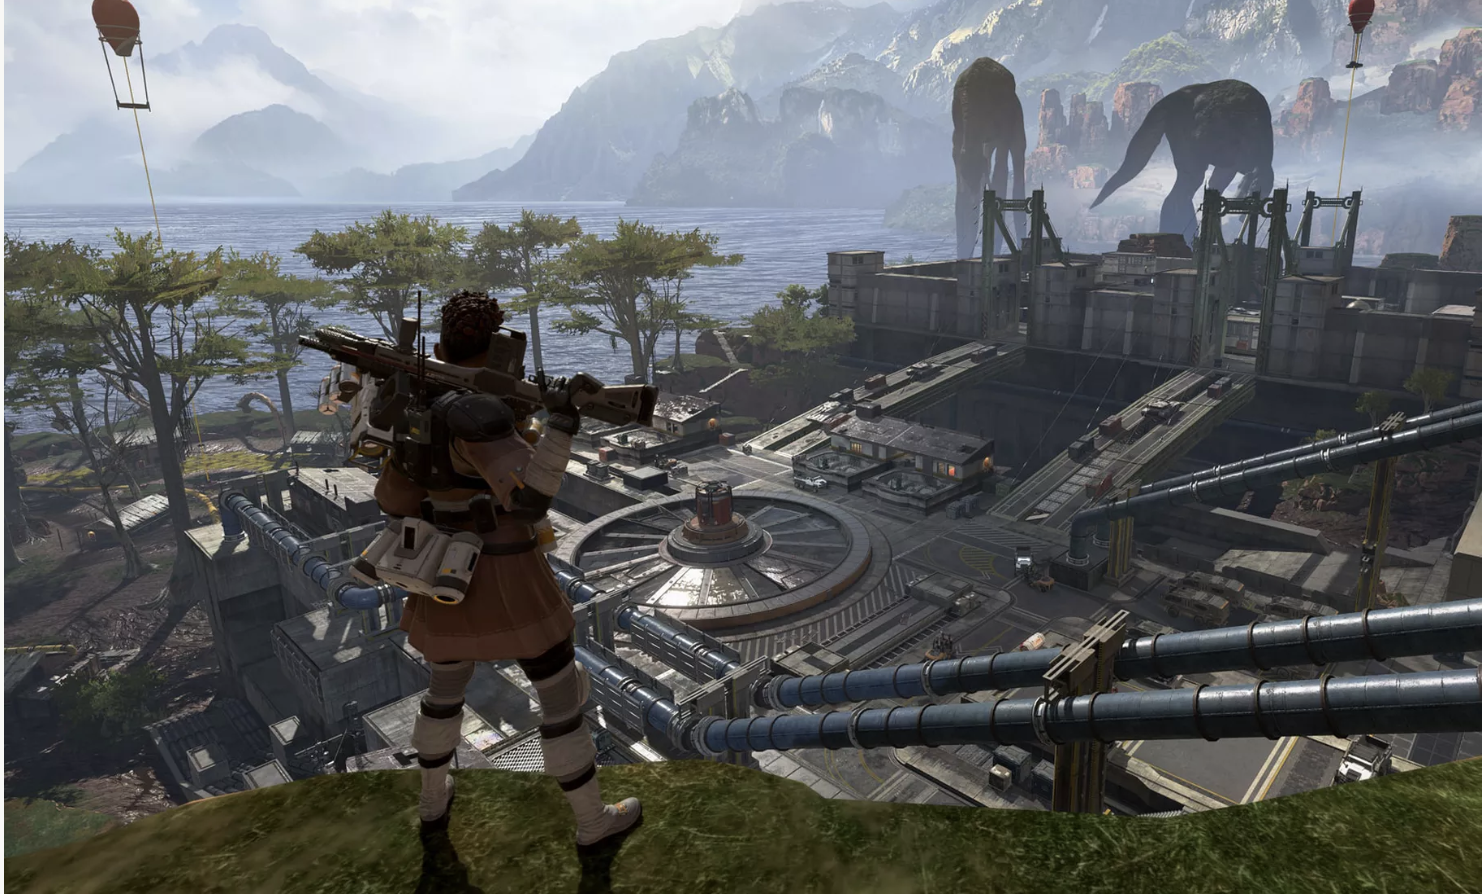 An Apex Legends Player Analysed Over 100,000 Matches To Find The Most Popular Drop Zones